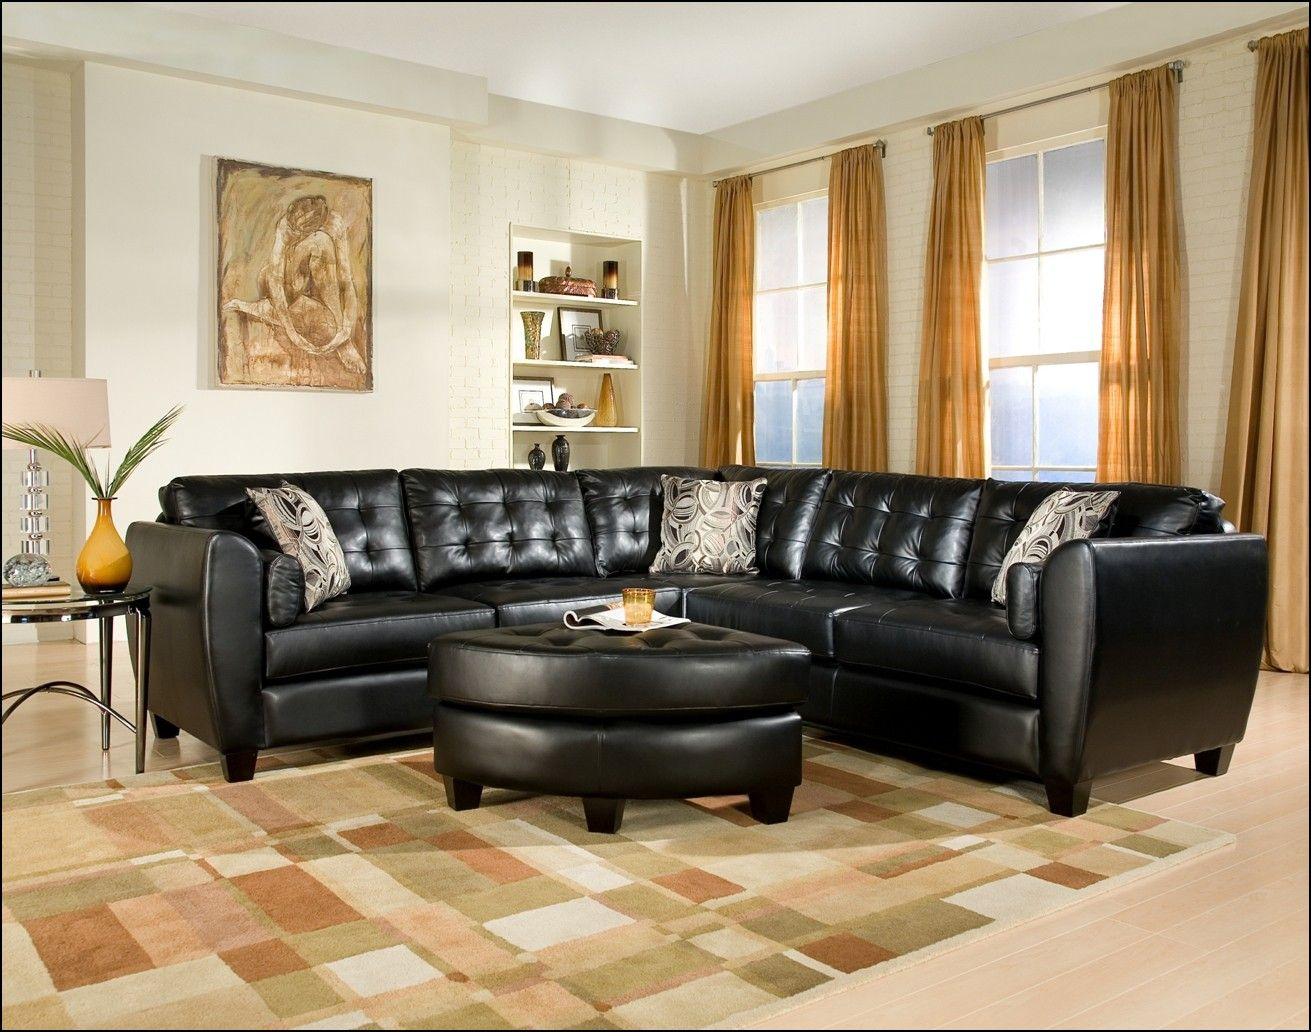 Curtains To Go With Black Leather Sofa Leather Living Room